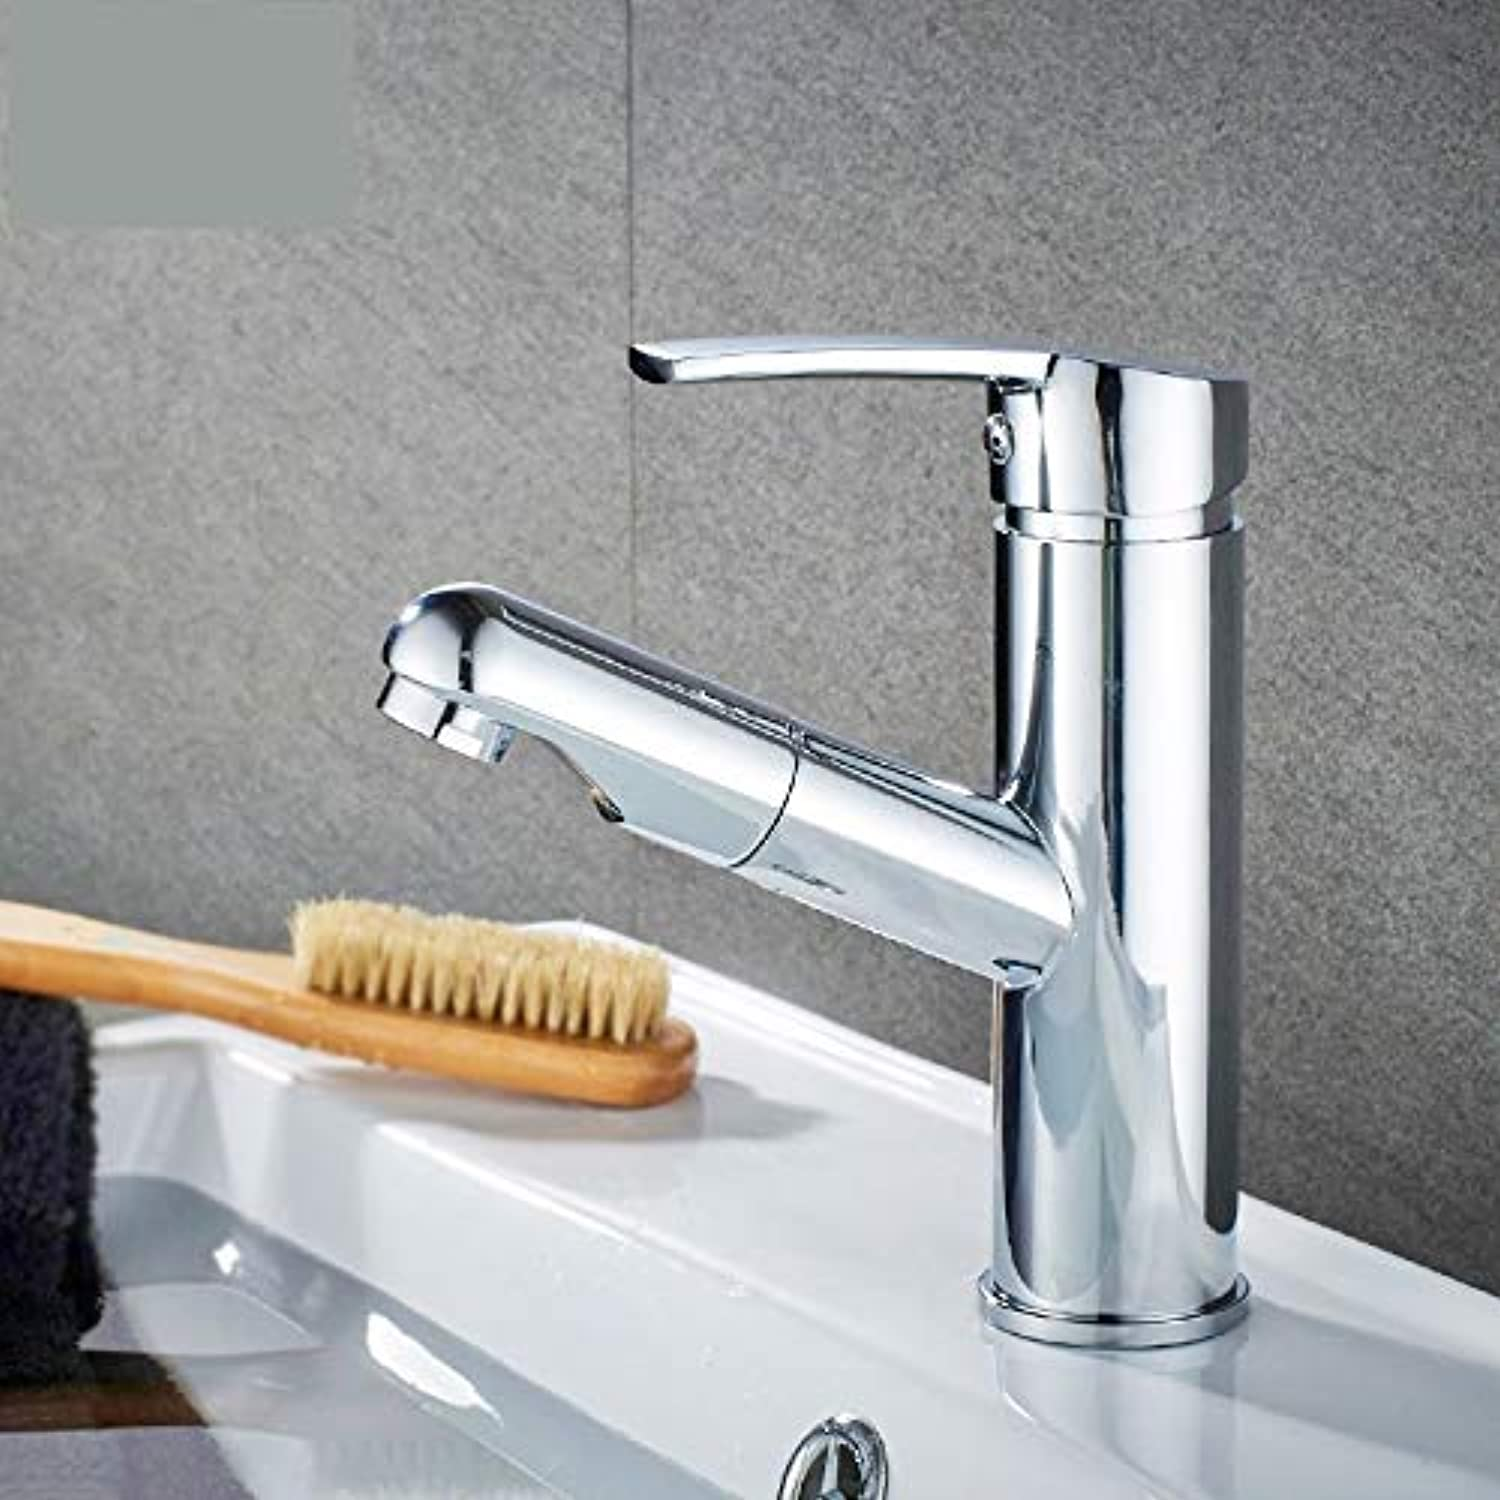 Fuxitoggo Modern Luxury Bathroom Lever Faucet for Any Style Water-tap